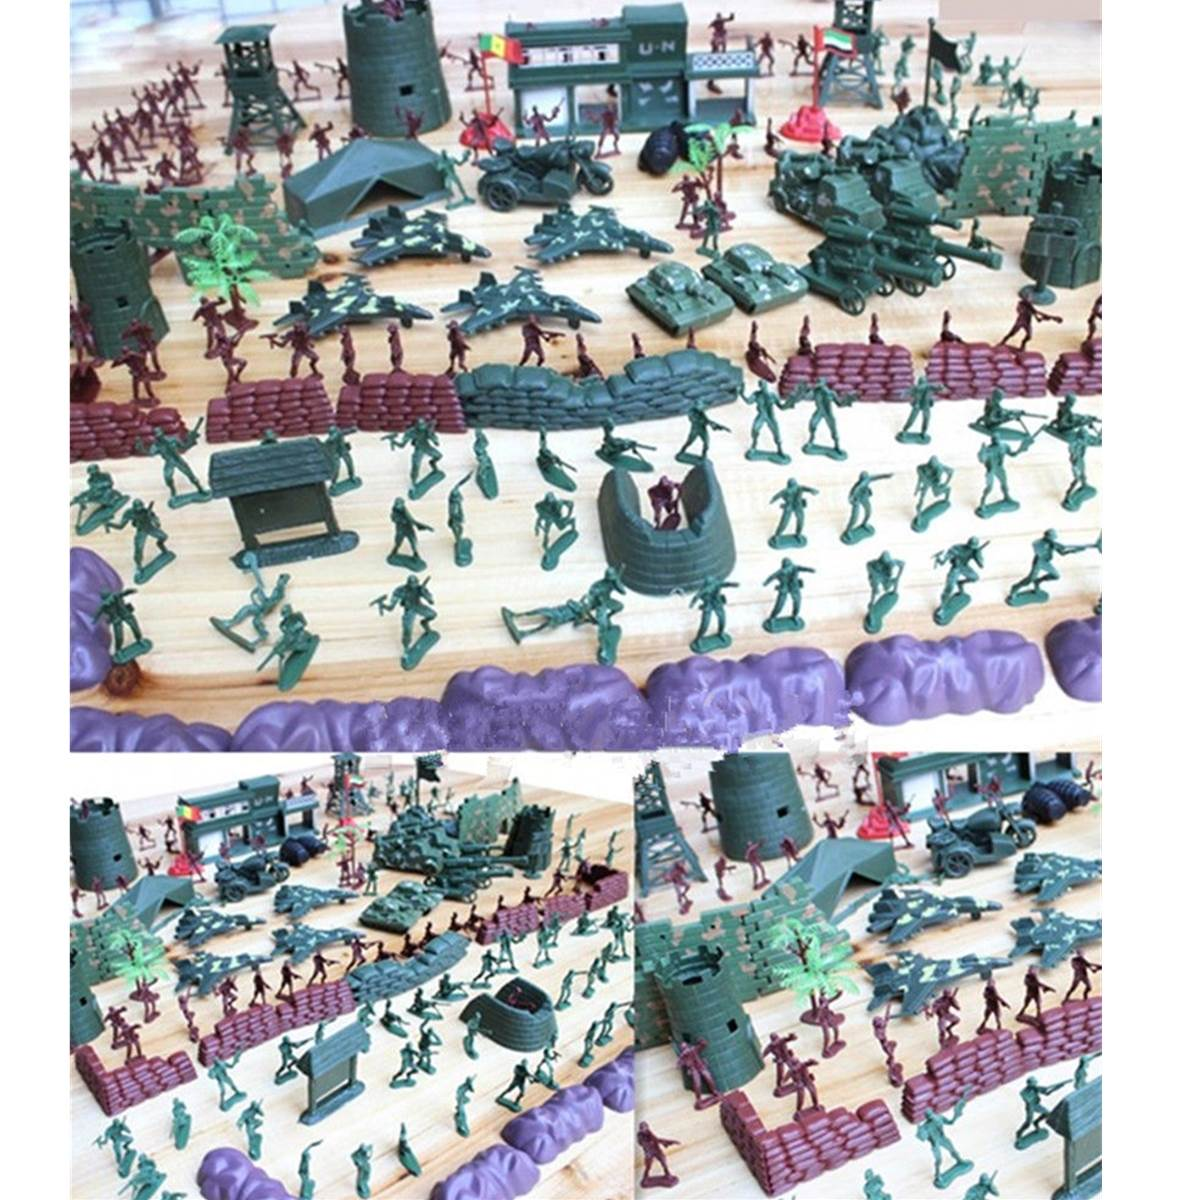 500pcs/set Military Playset Plastic Toy Soldiers Army Men 4cm Figures Accessories Model Toys Sets For Children Boys Adult soldiers set military toys model of helicopter tank soldiers the artillery missile toy for boy